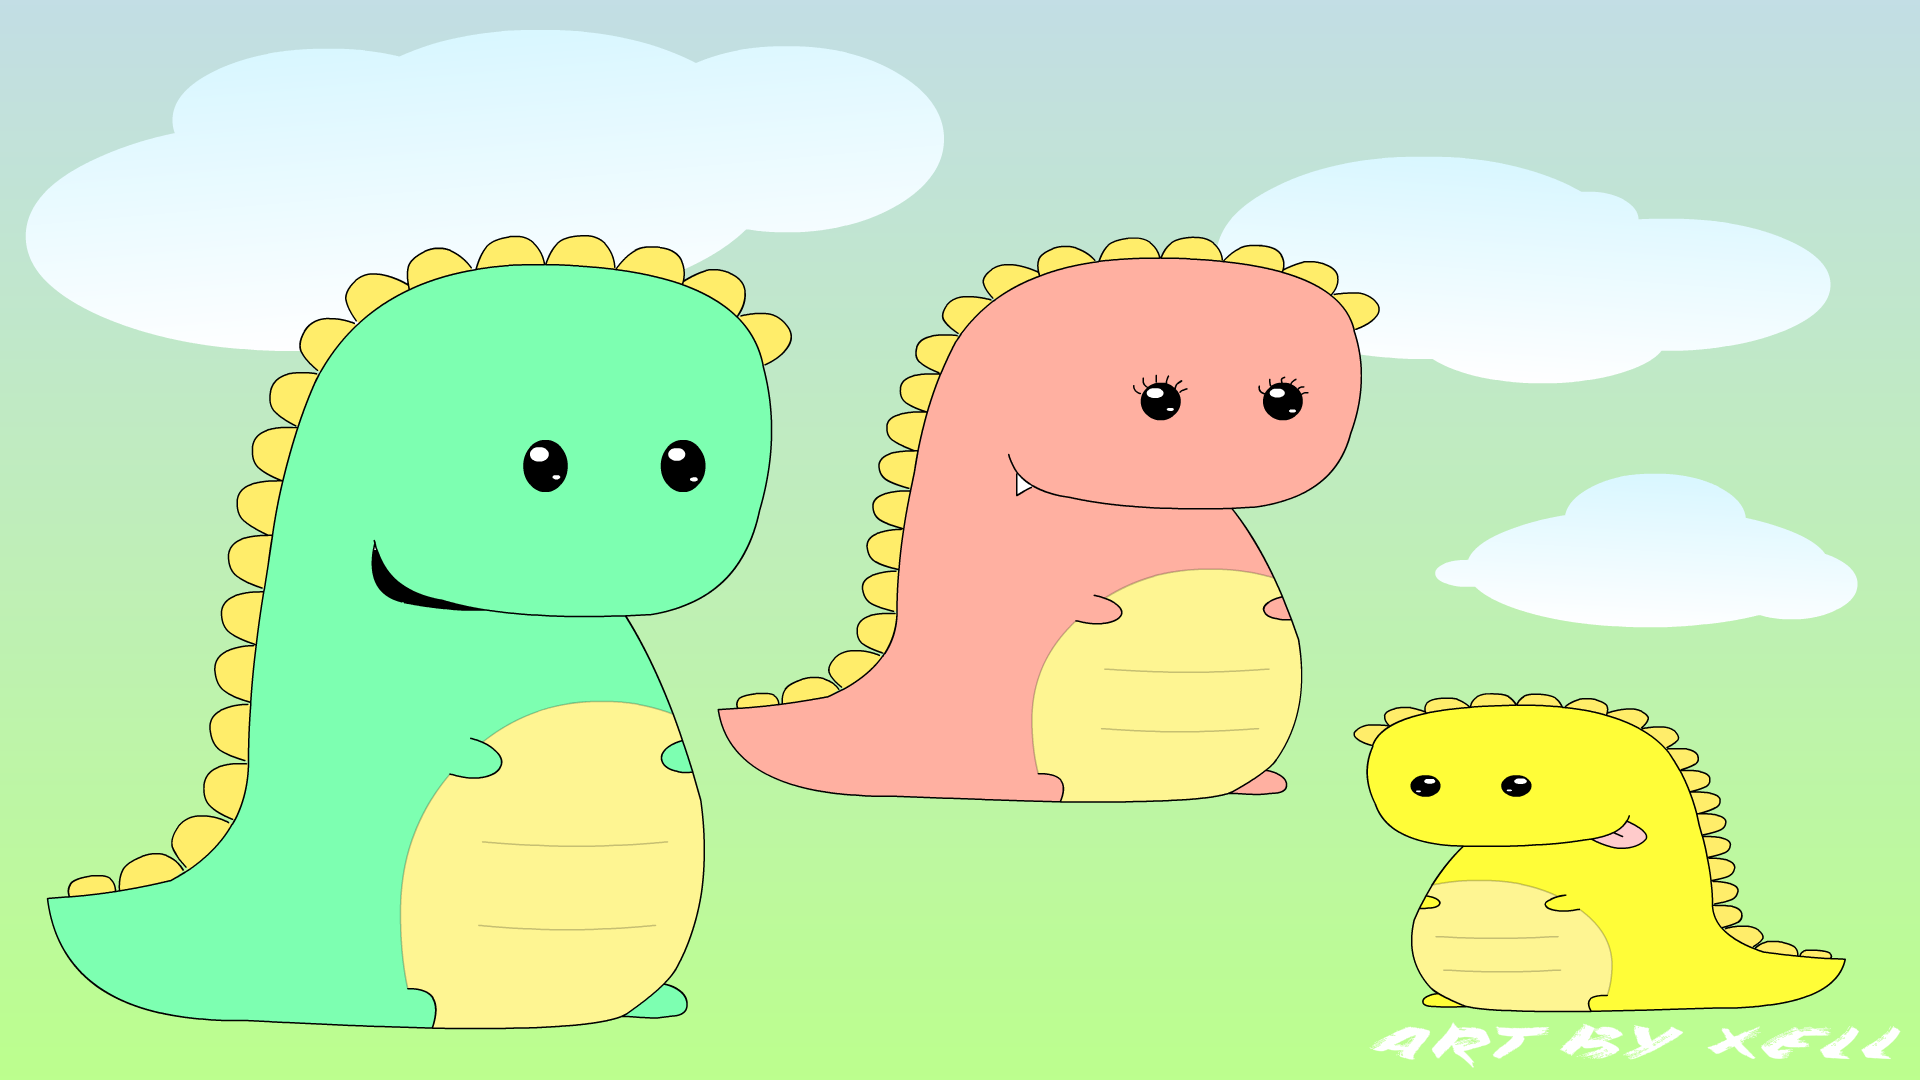 Dino Family Wallpaper ( Bust-A-Move Style) 1080p